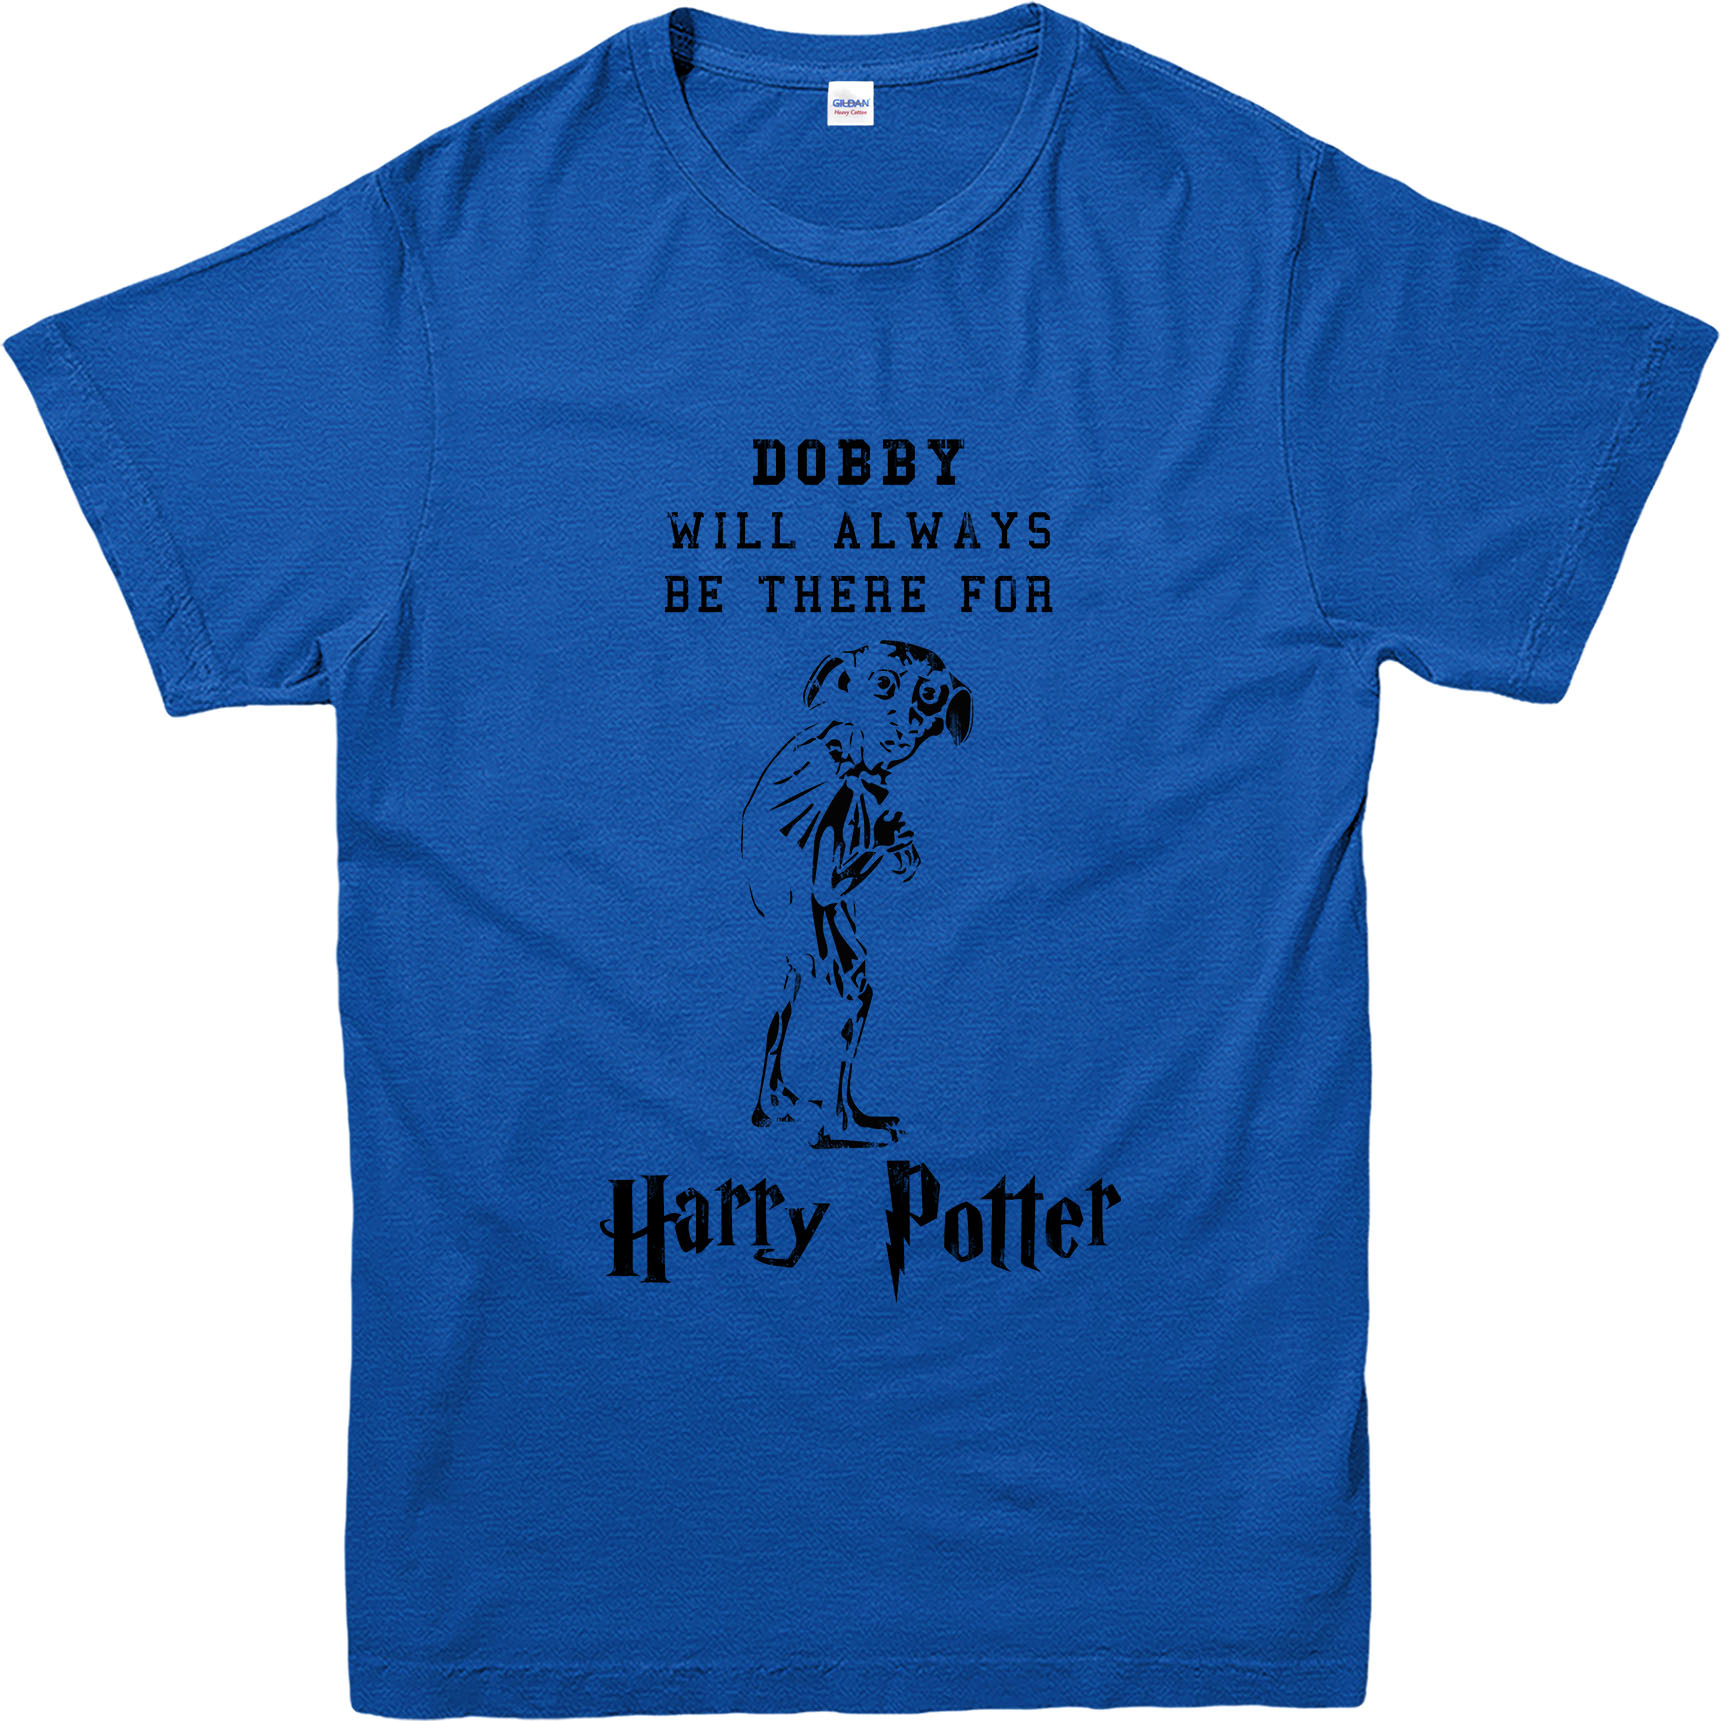 Harry Potter T Shirt Dobby Famous Quote T Shirt Inspired